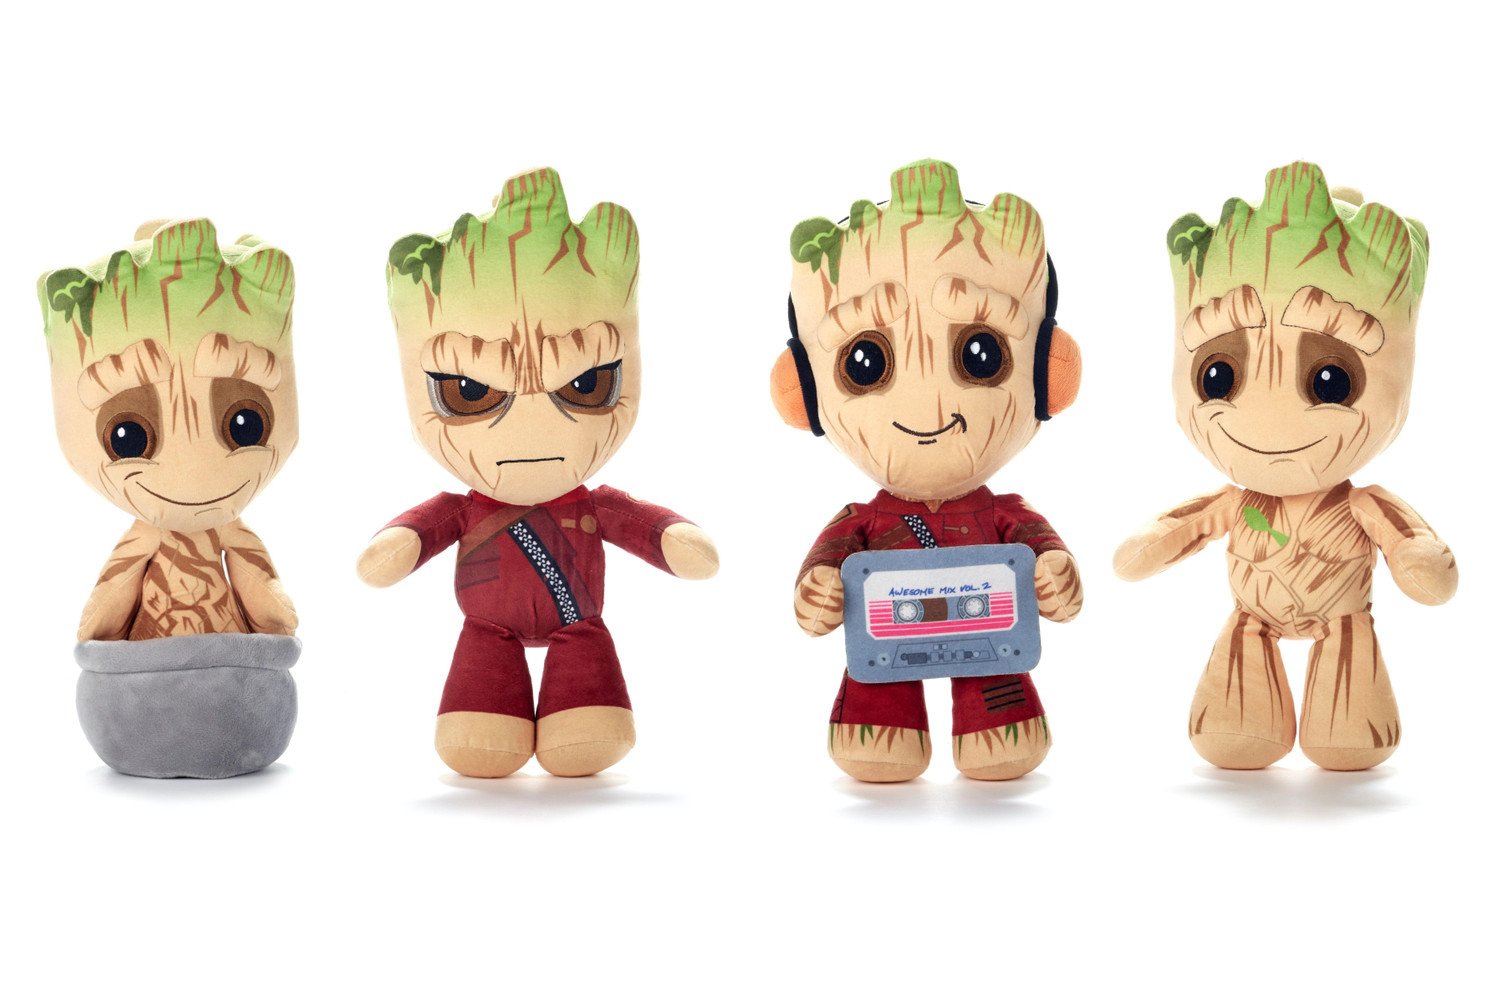 Marvel: Guardians of the Galaxy - Baby Groot PLüsch - Kollektion 4-fach sortiert, 32cm